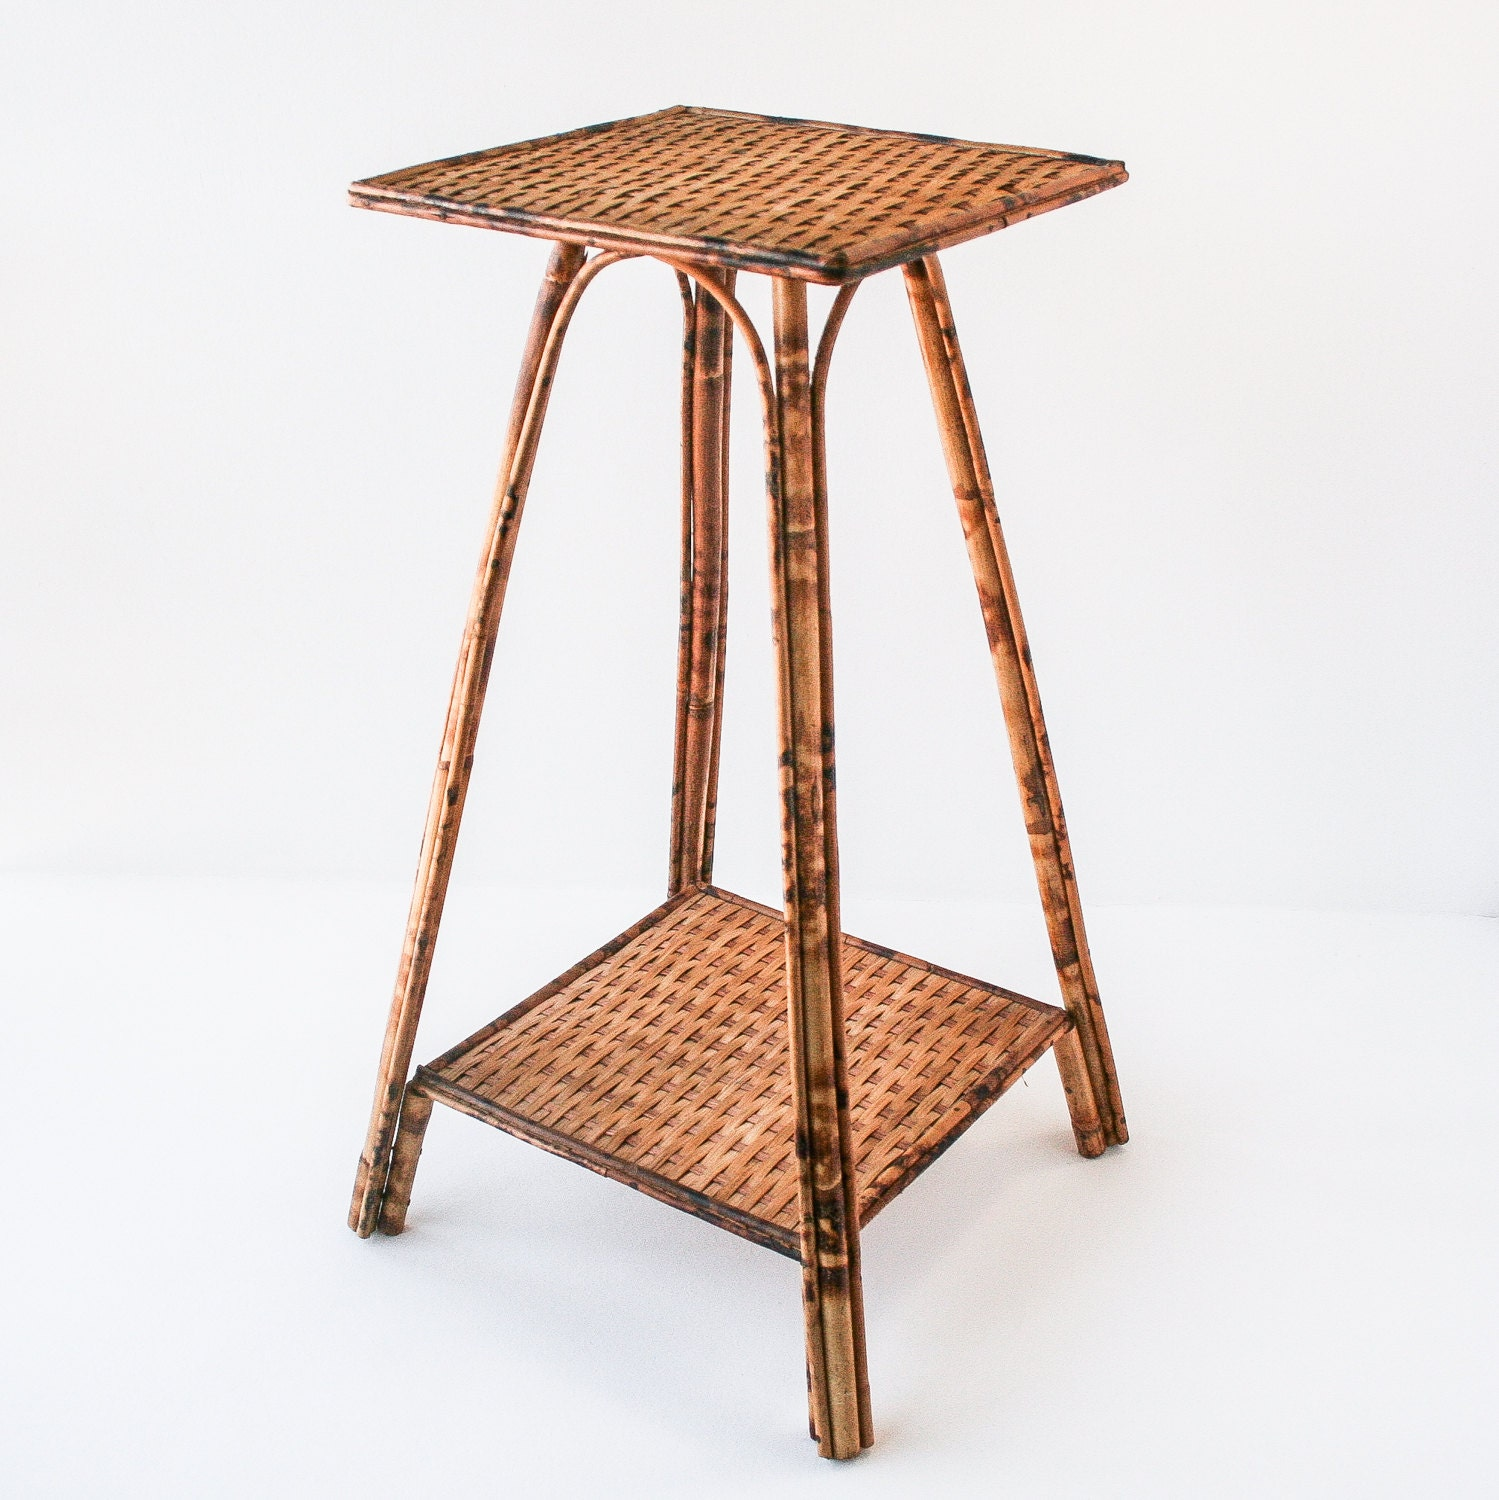 Bamboo Plant On Table: Vintage Rattan Bamboo Plant Stand / Side Table By